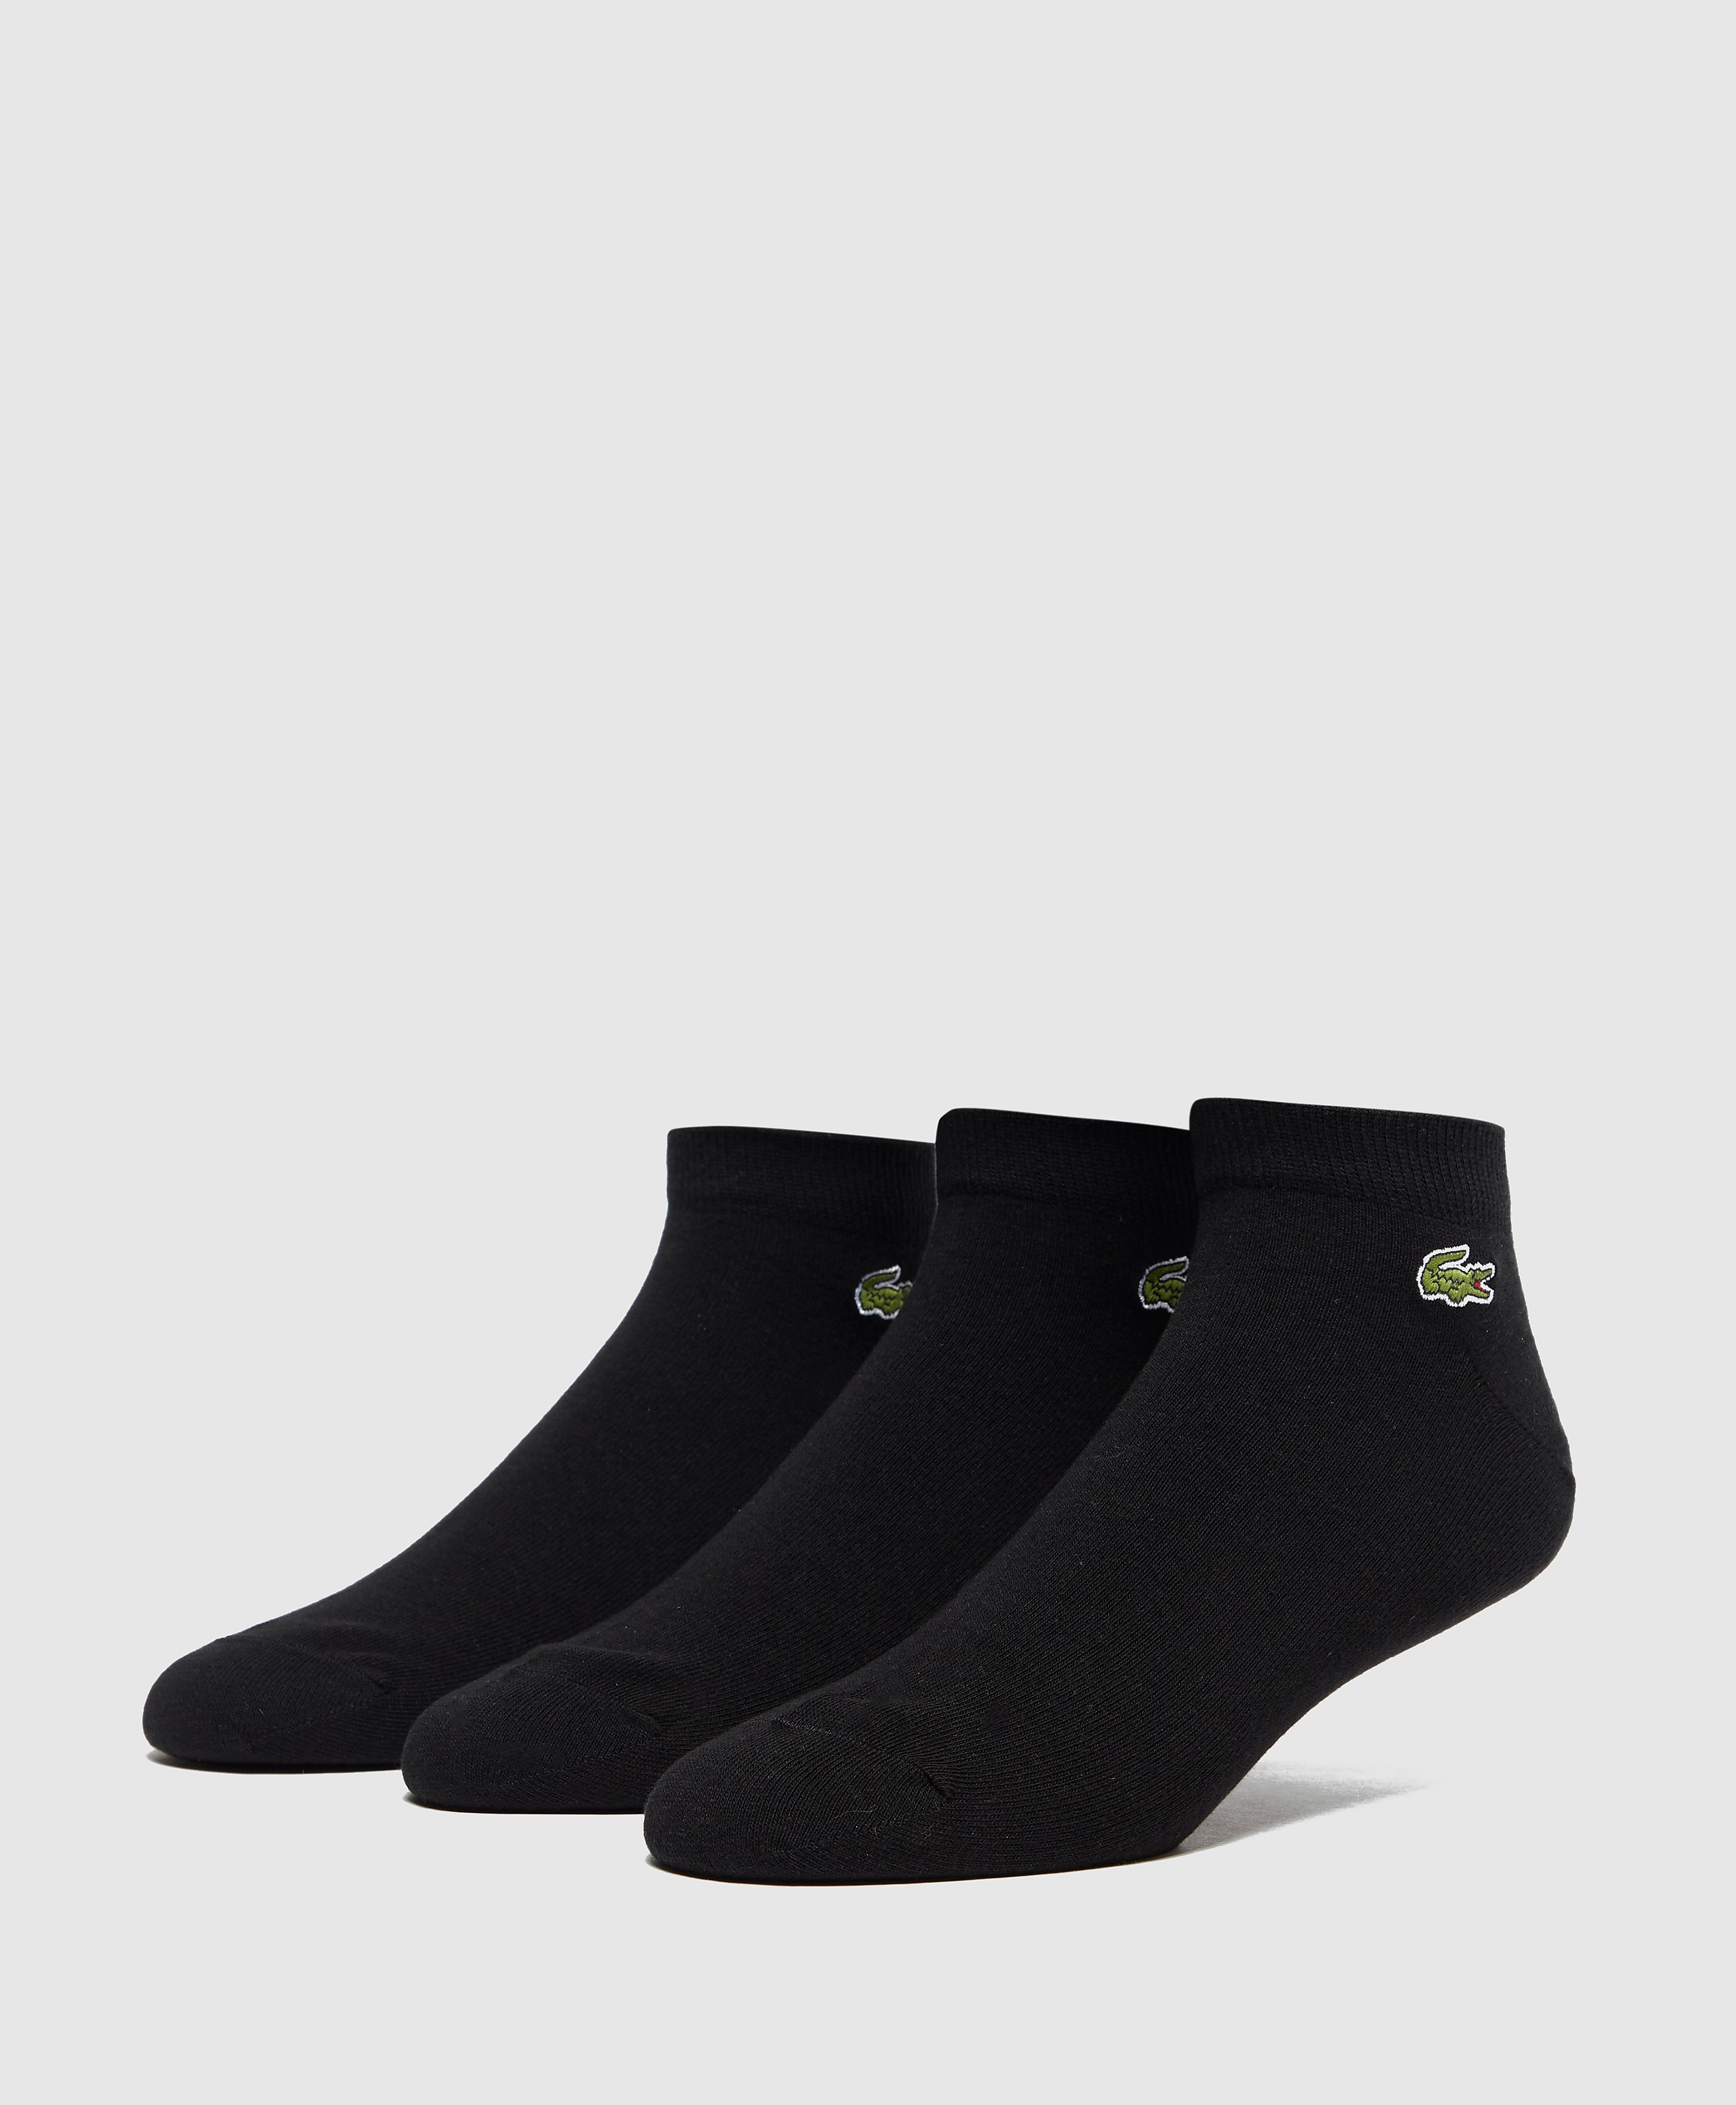 Lacoste 3 Pack Ankle Socks